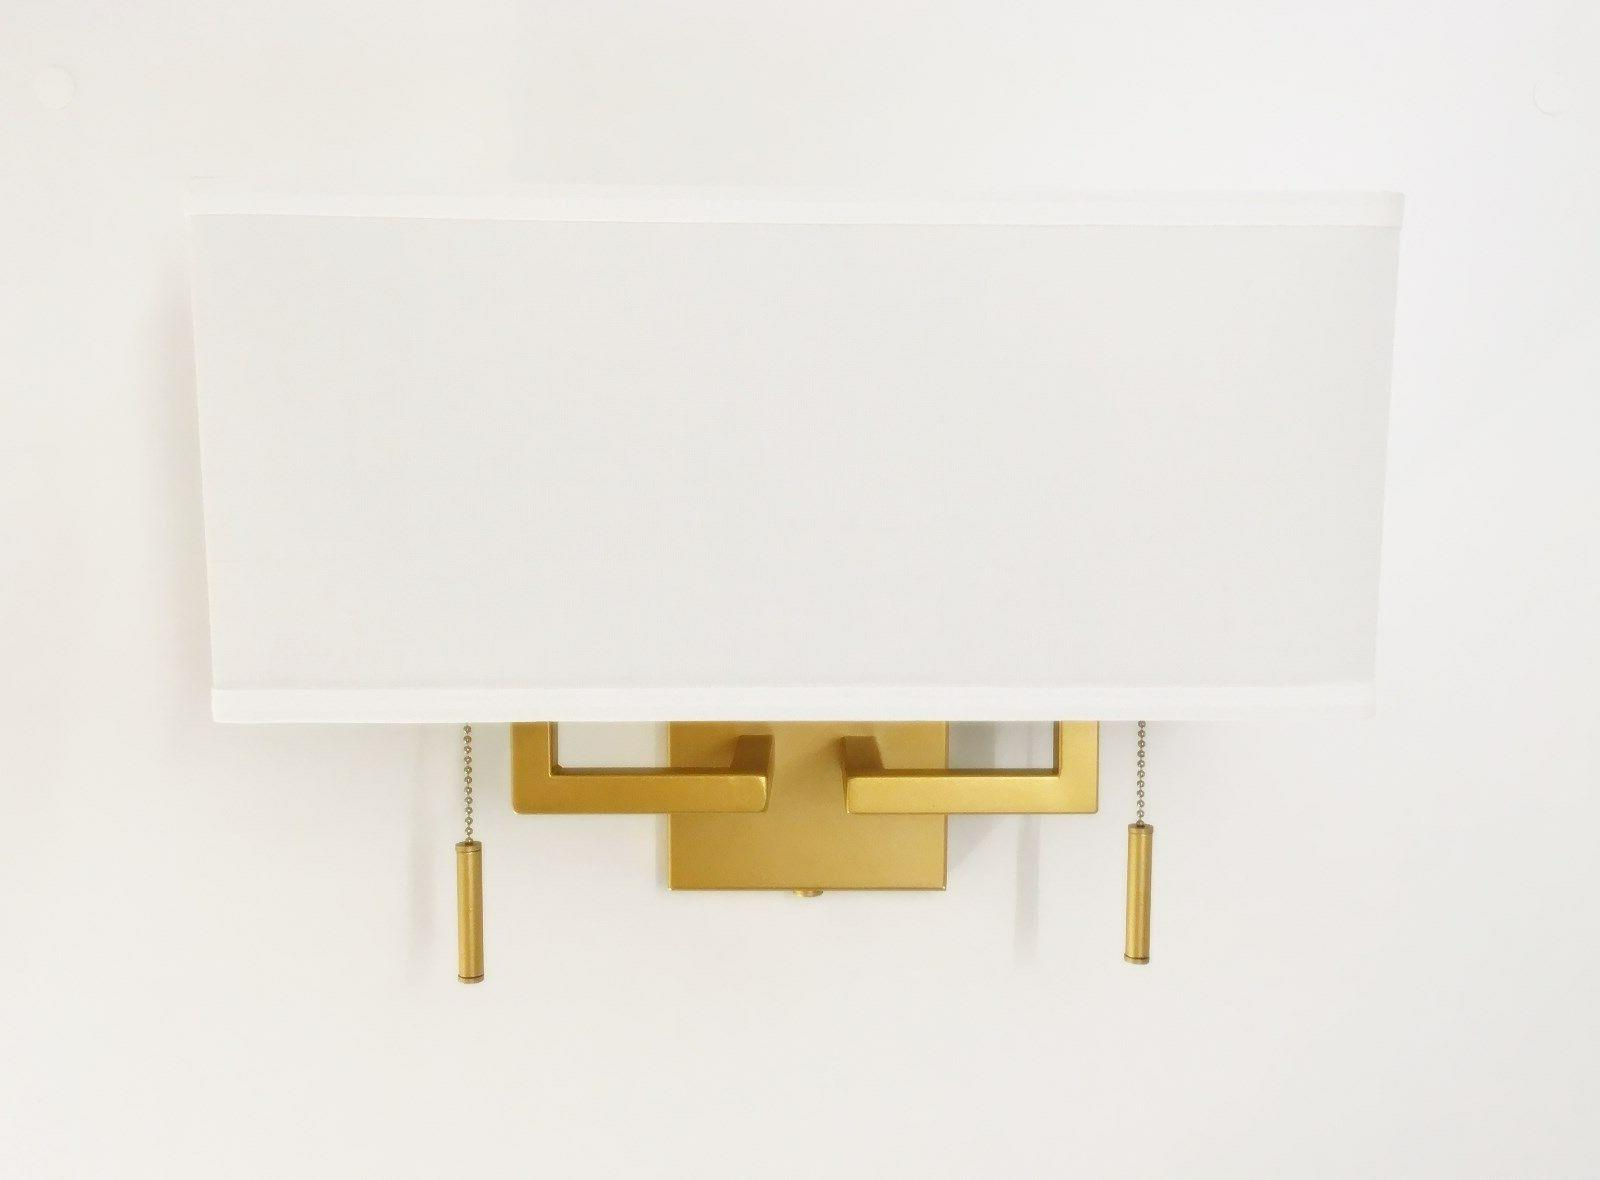 Matte Modern Sconce with Rect. Shade, Hardwire